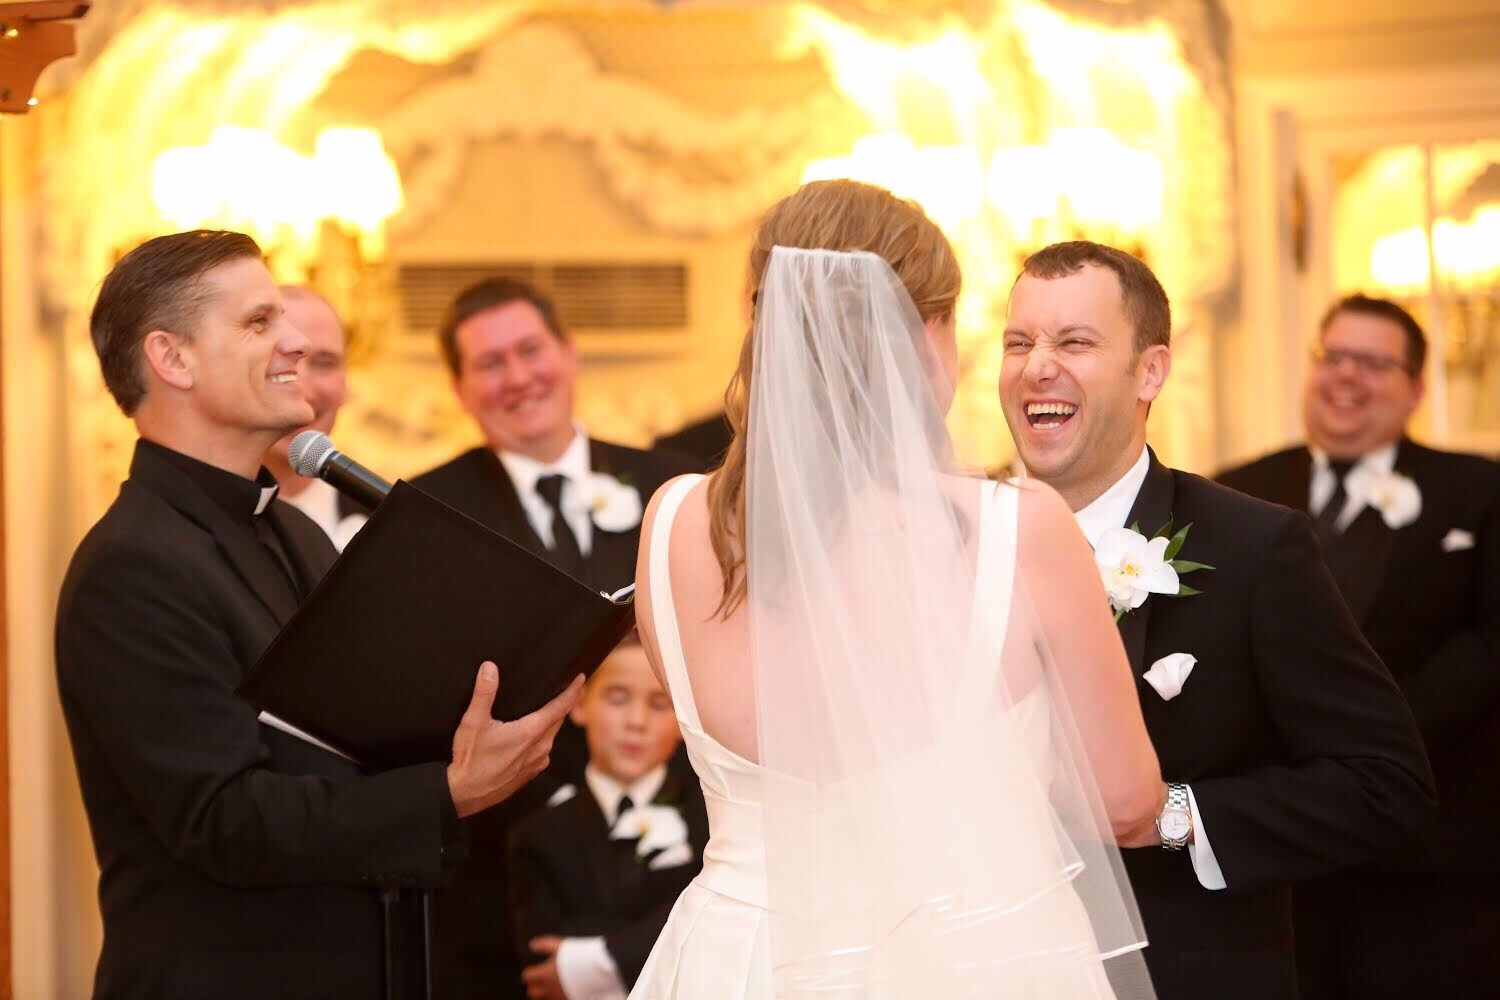 Laughing Groom and wedding officiant